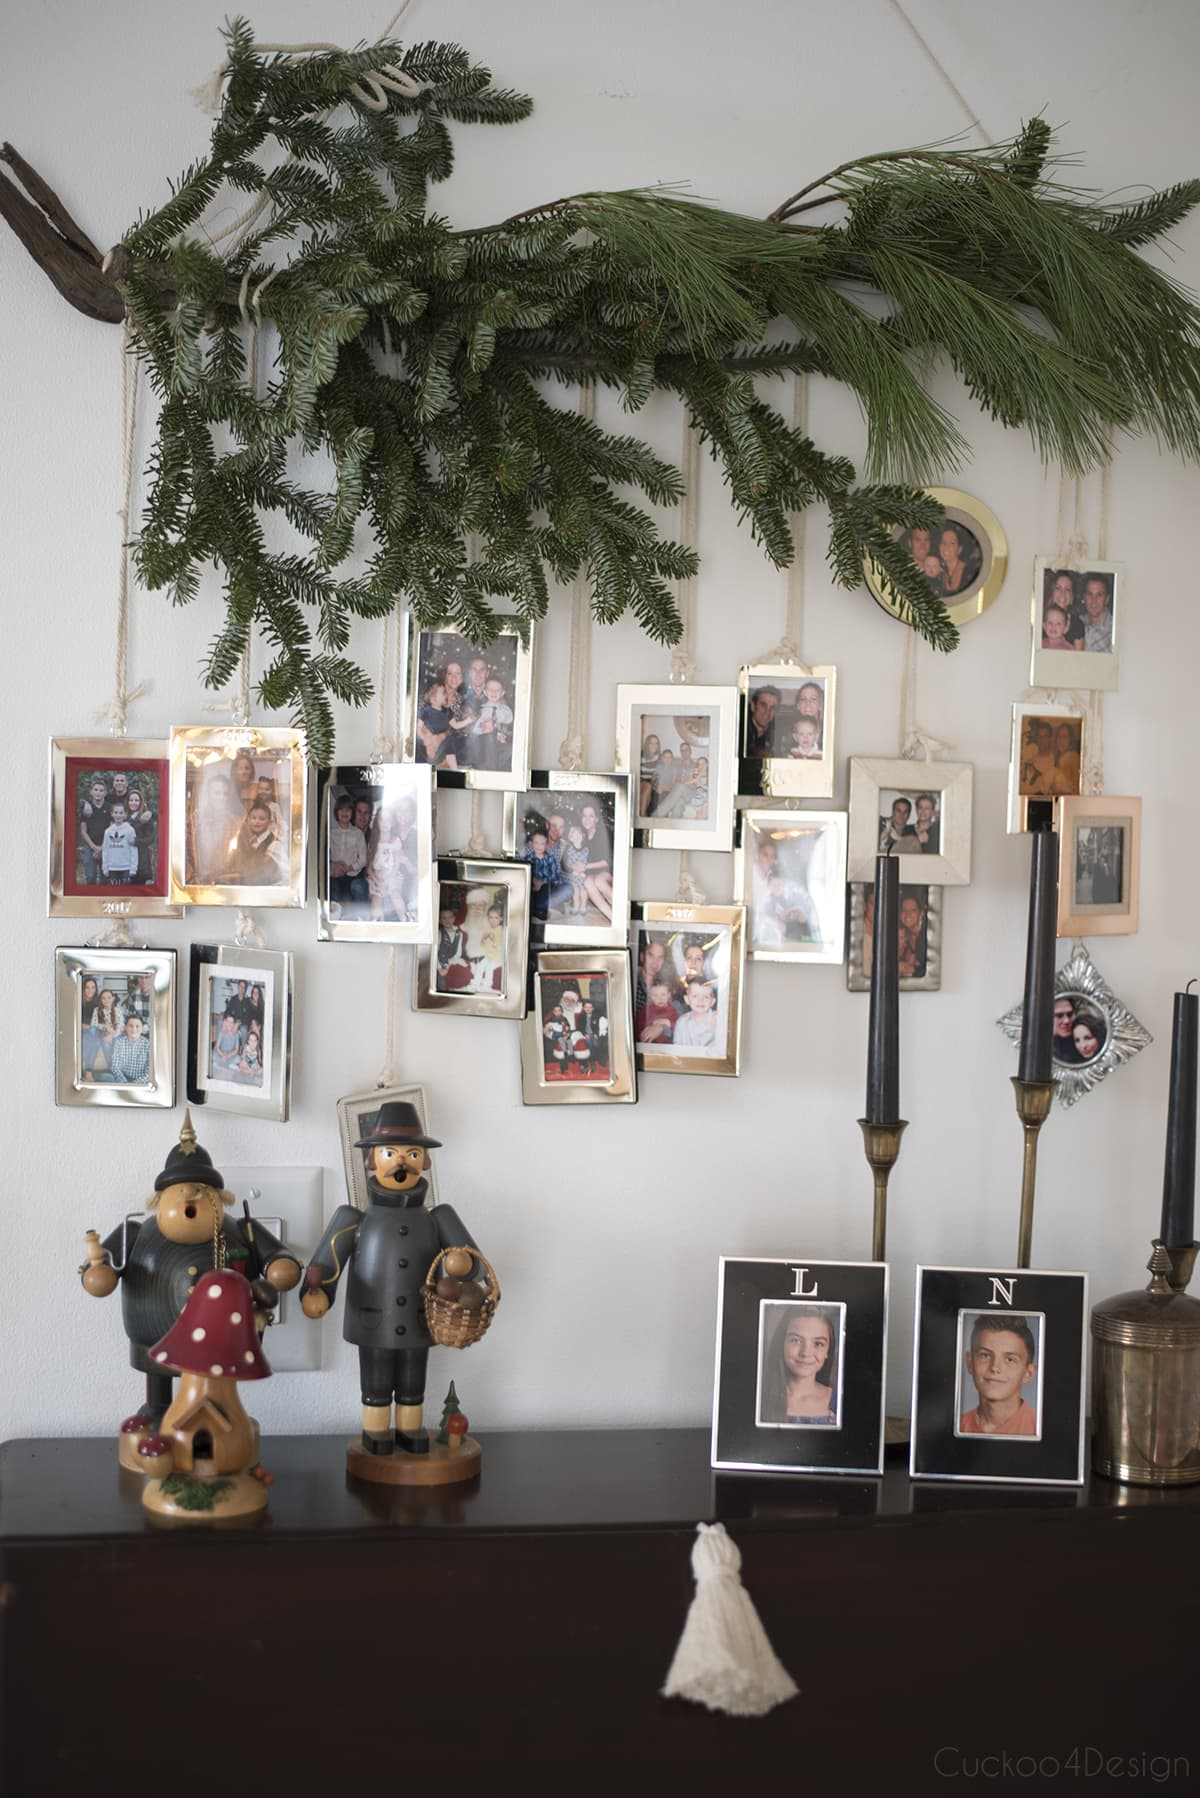 pine tree swag with photos as natural Christmas decorations